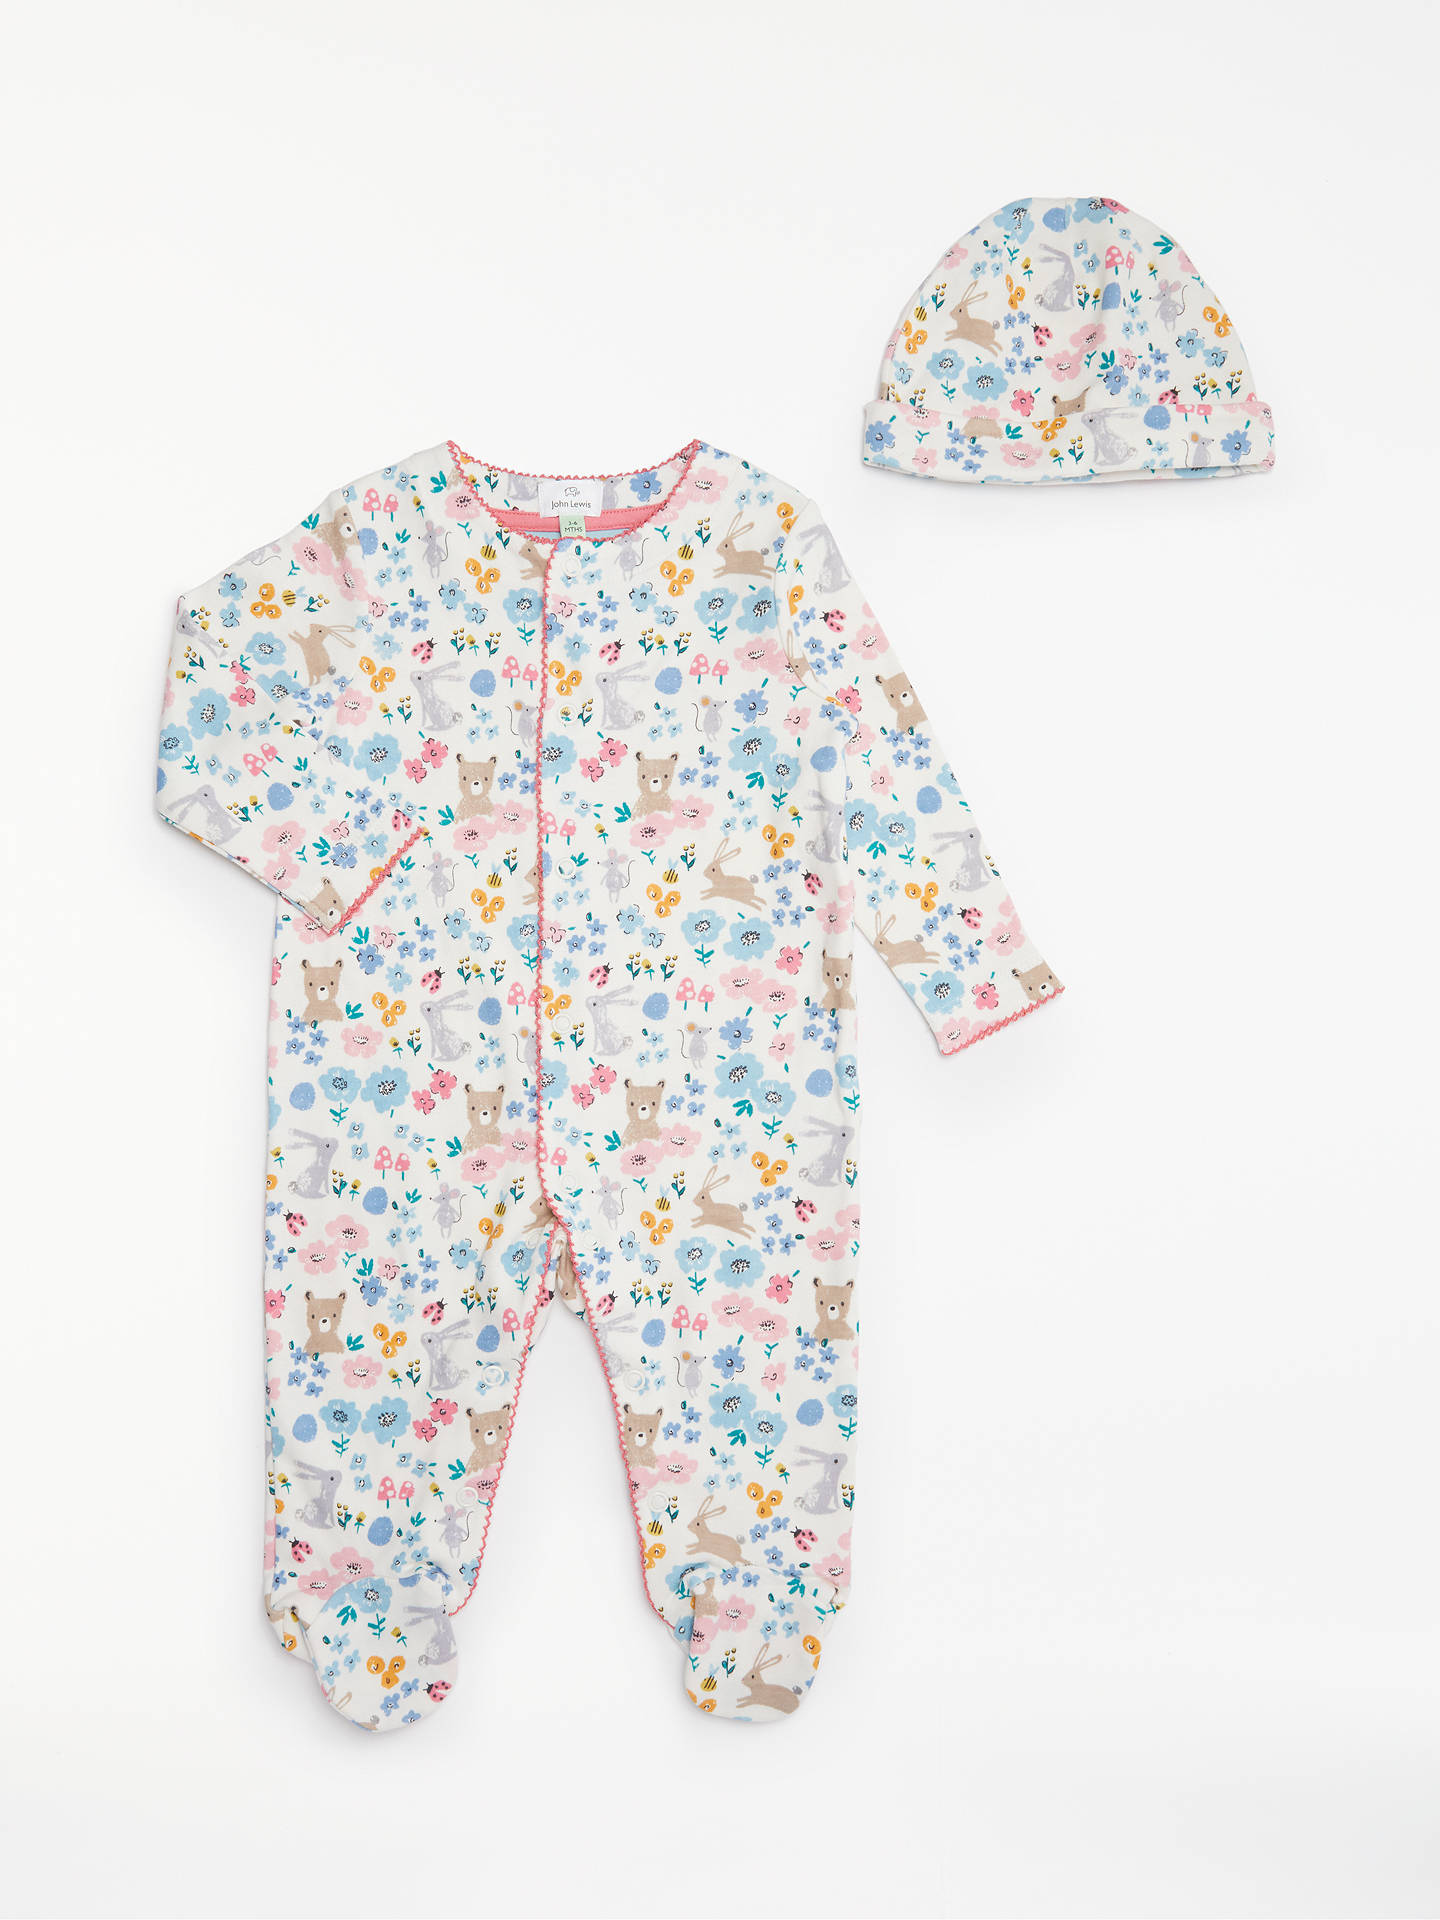 33c21572d9f3 John Lewis   Partners Baby GOTS Organic Cotton Animals   Flowers ...